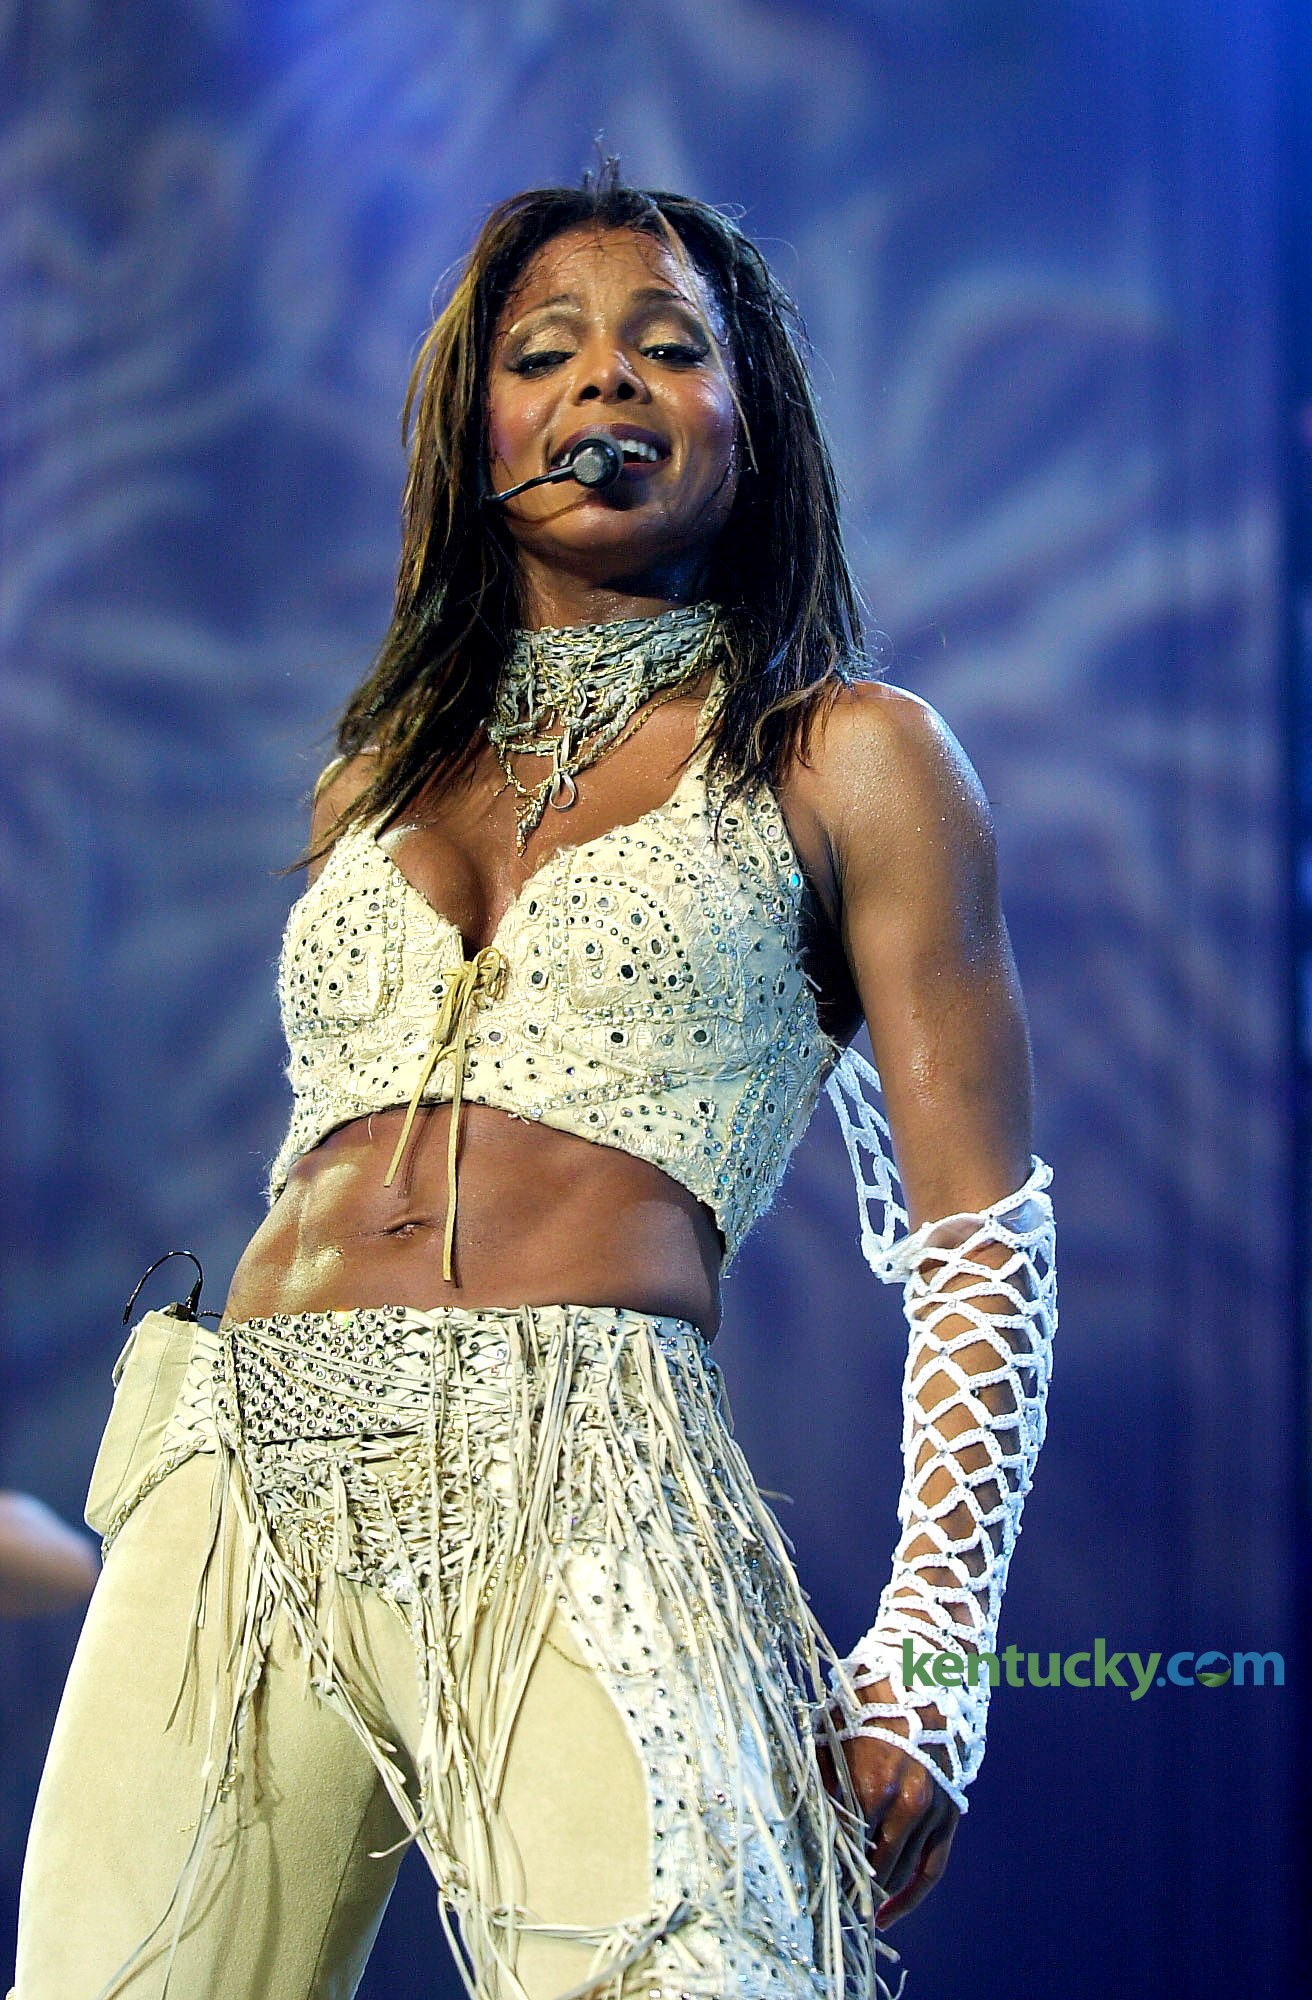 kentucky photo archive photos from the lexington herald leader singer janet jackson during a 22 2001 concenrt at rupp arena in lexington